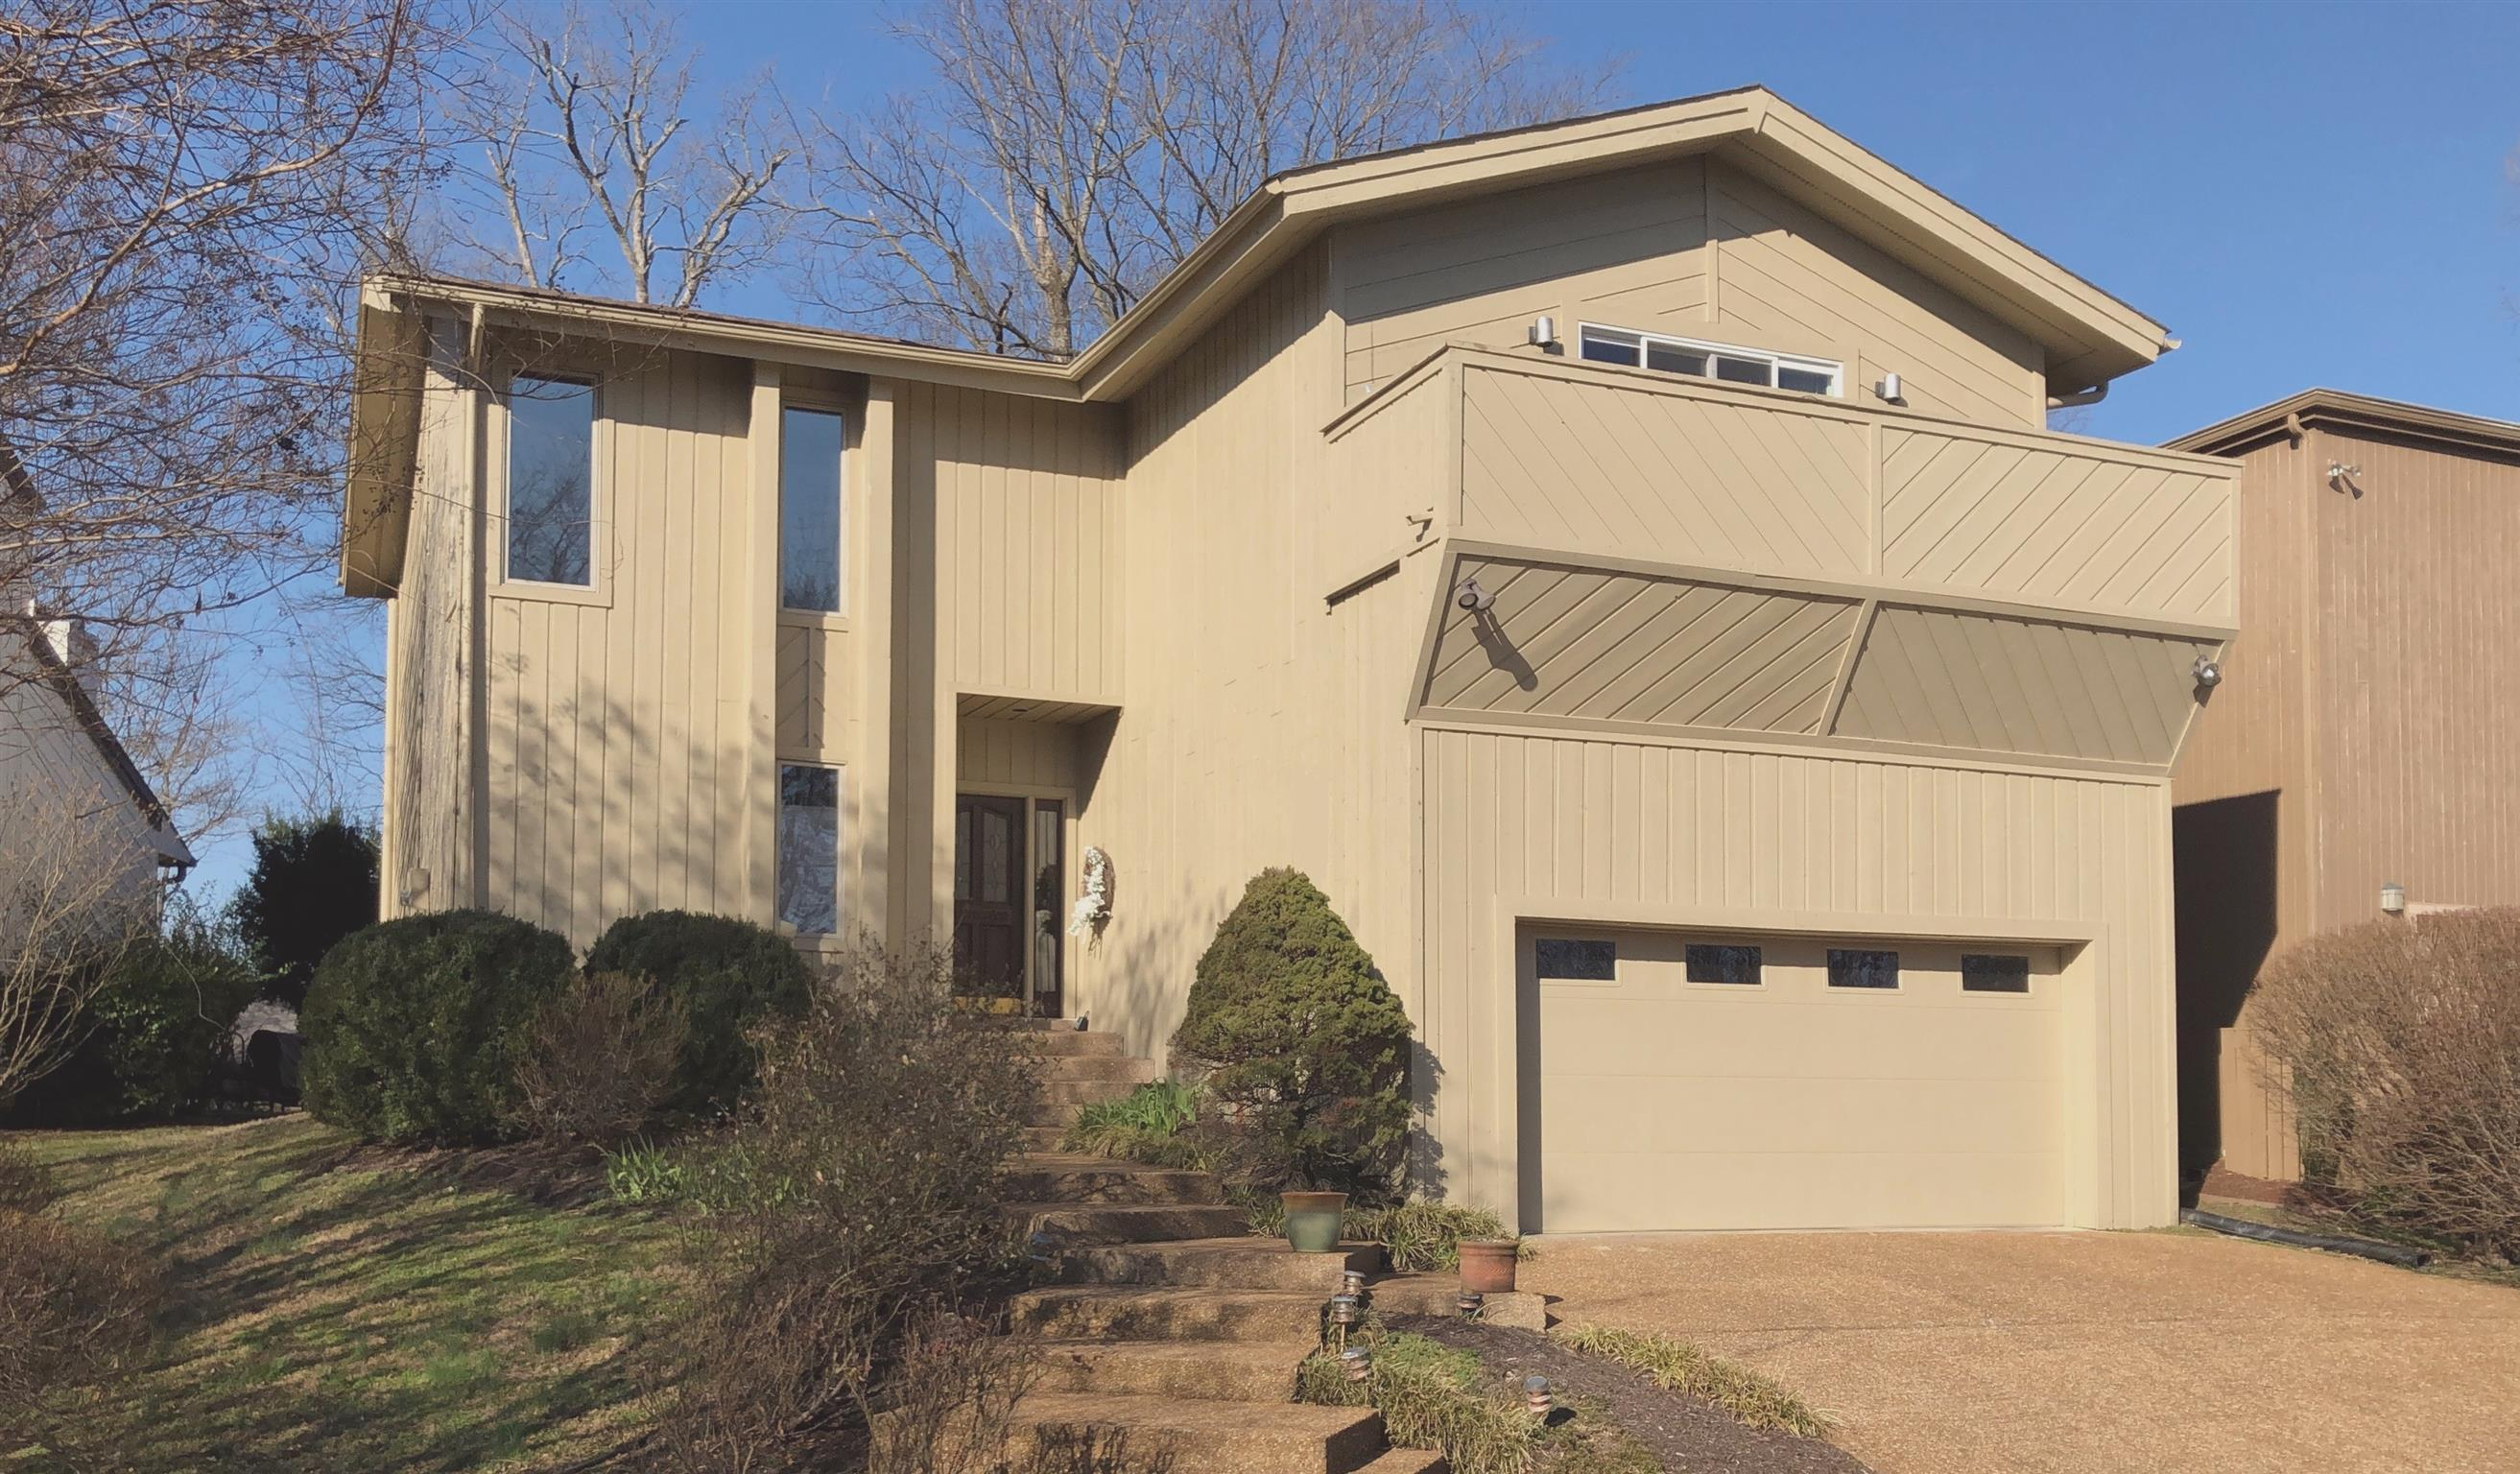 608 Harpeth Trace Dr, Bellevue, Tennessee